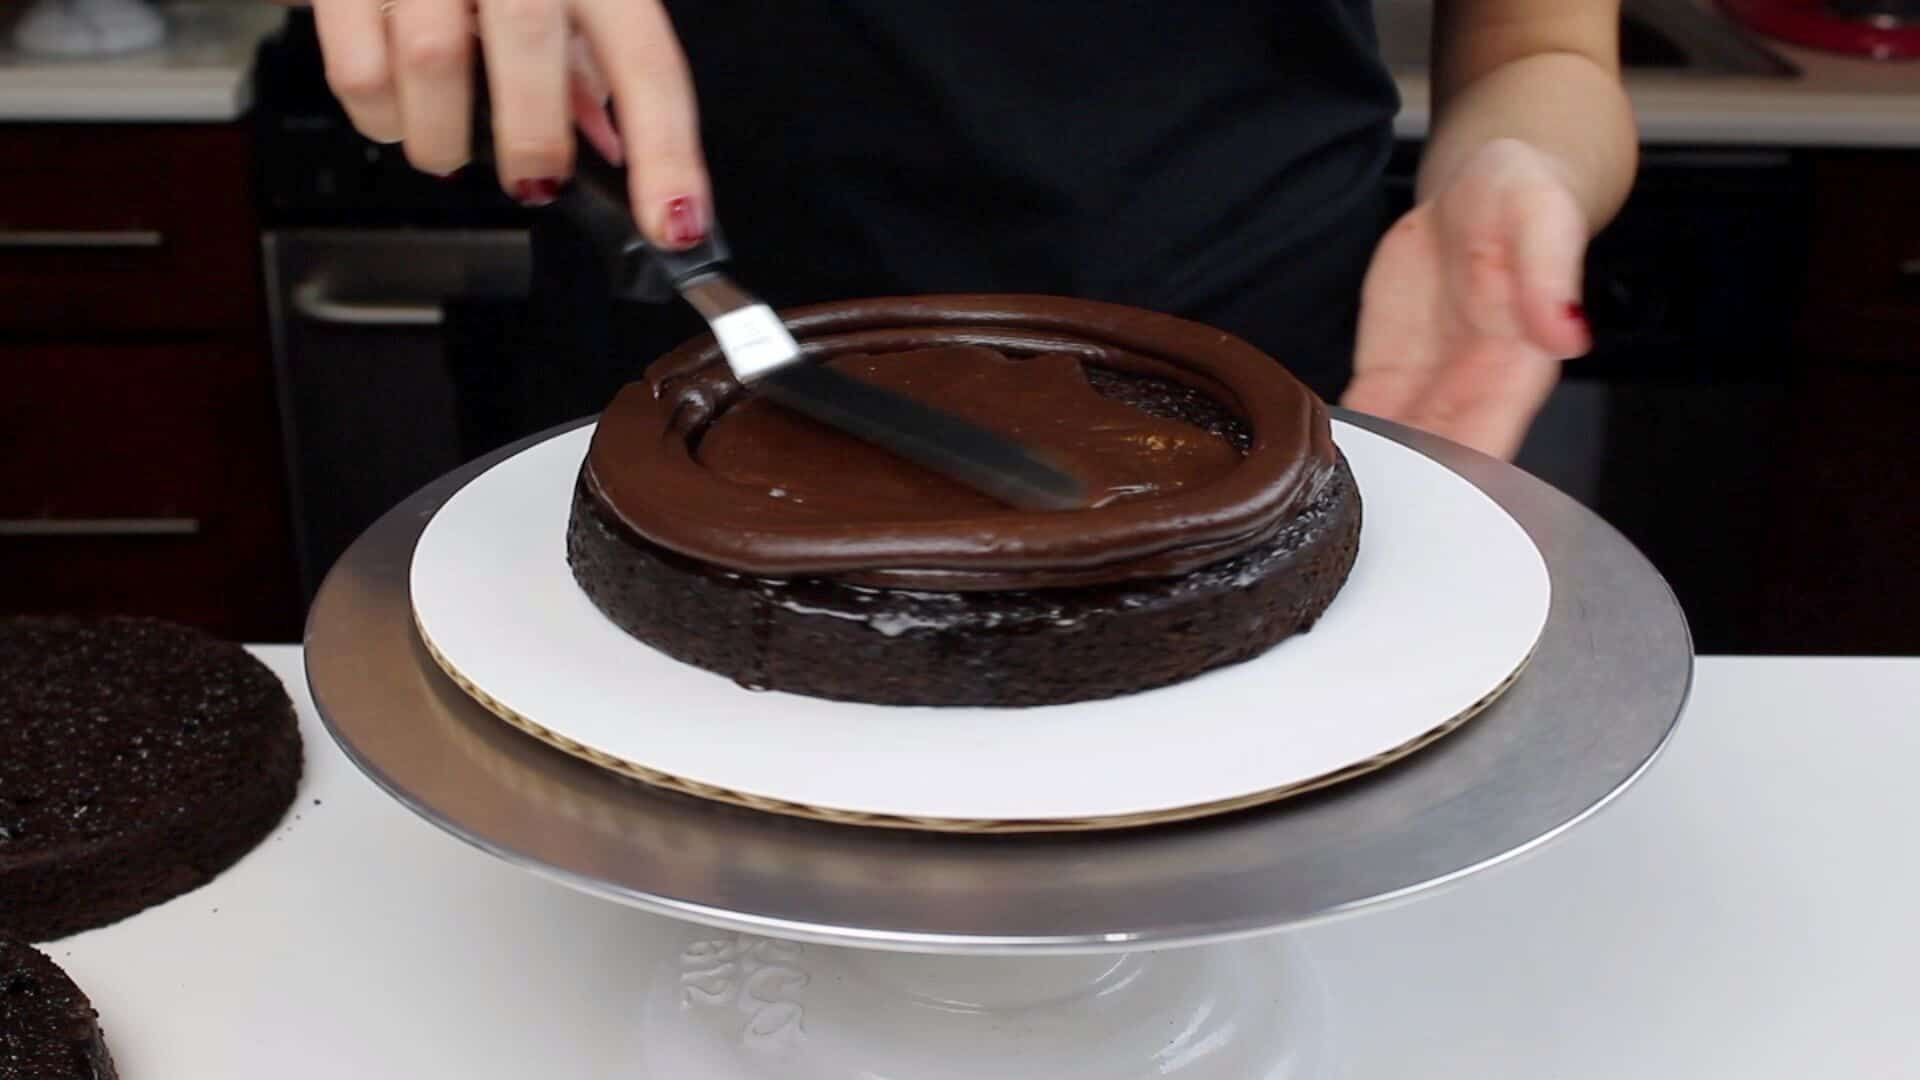 blacout image pudding spread